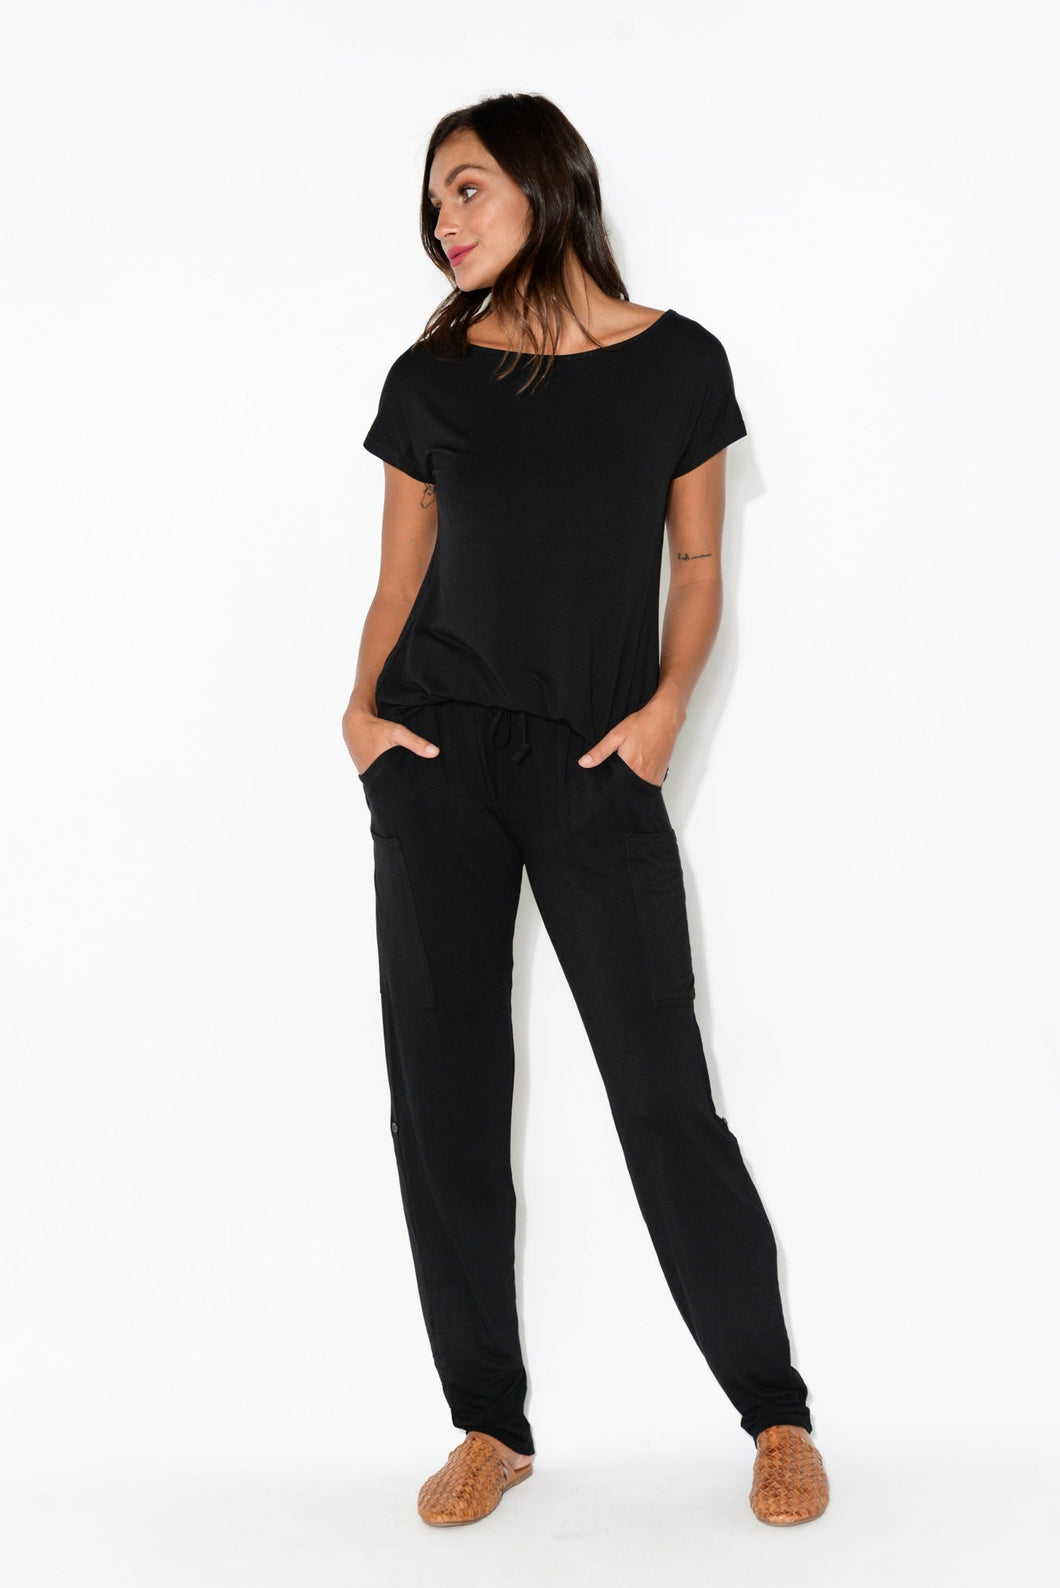 Black Bamboo Pocket Pants